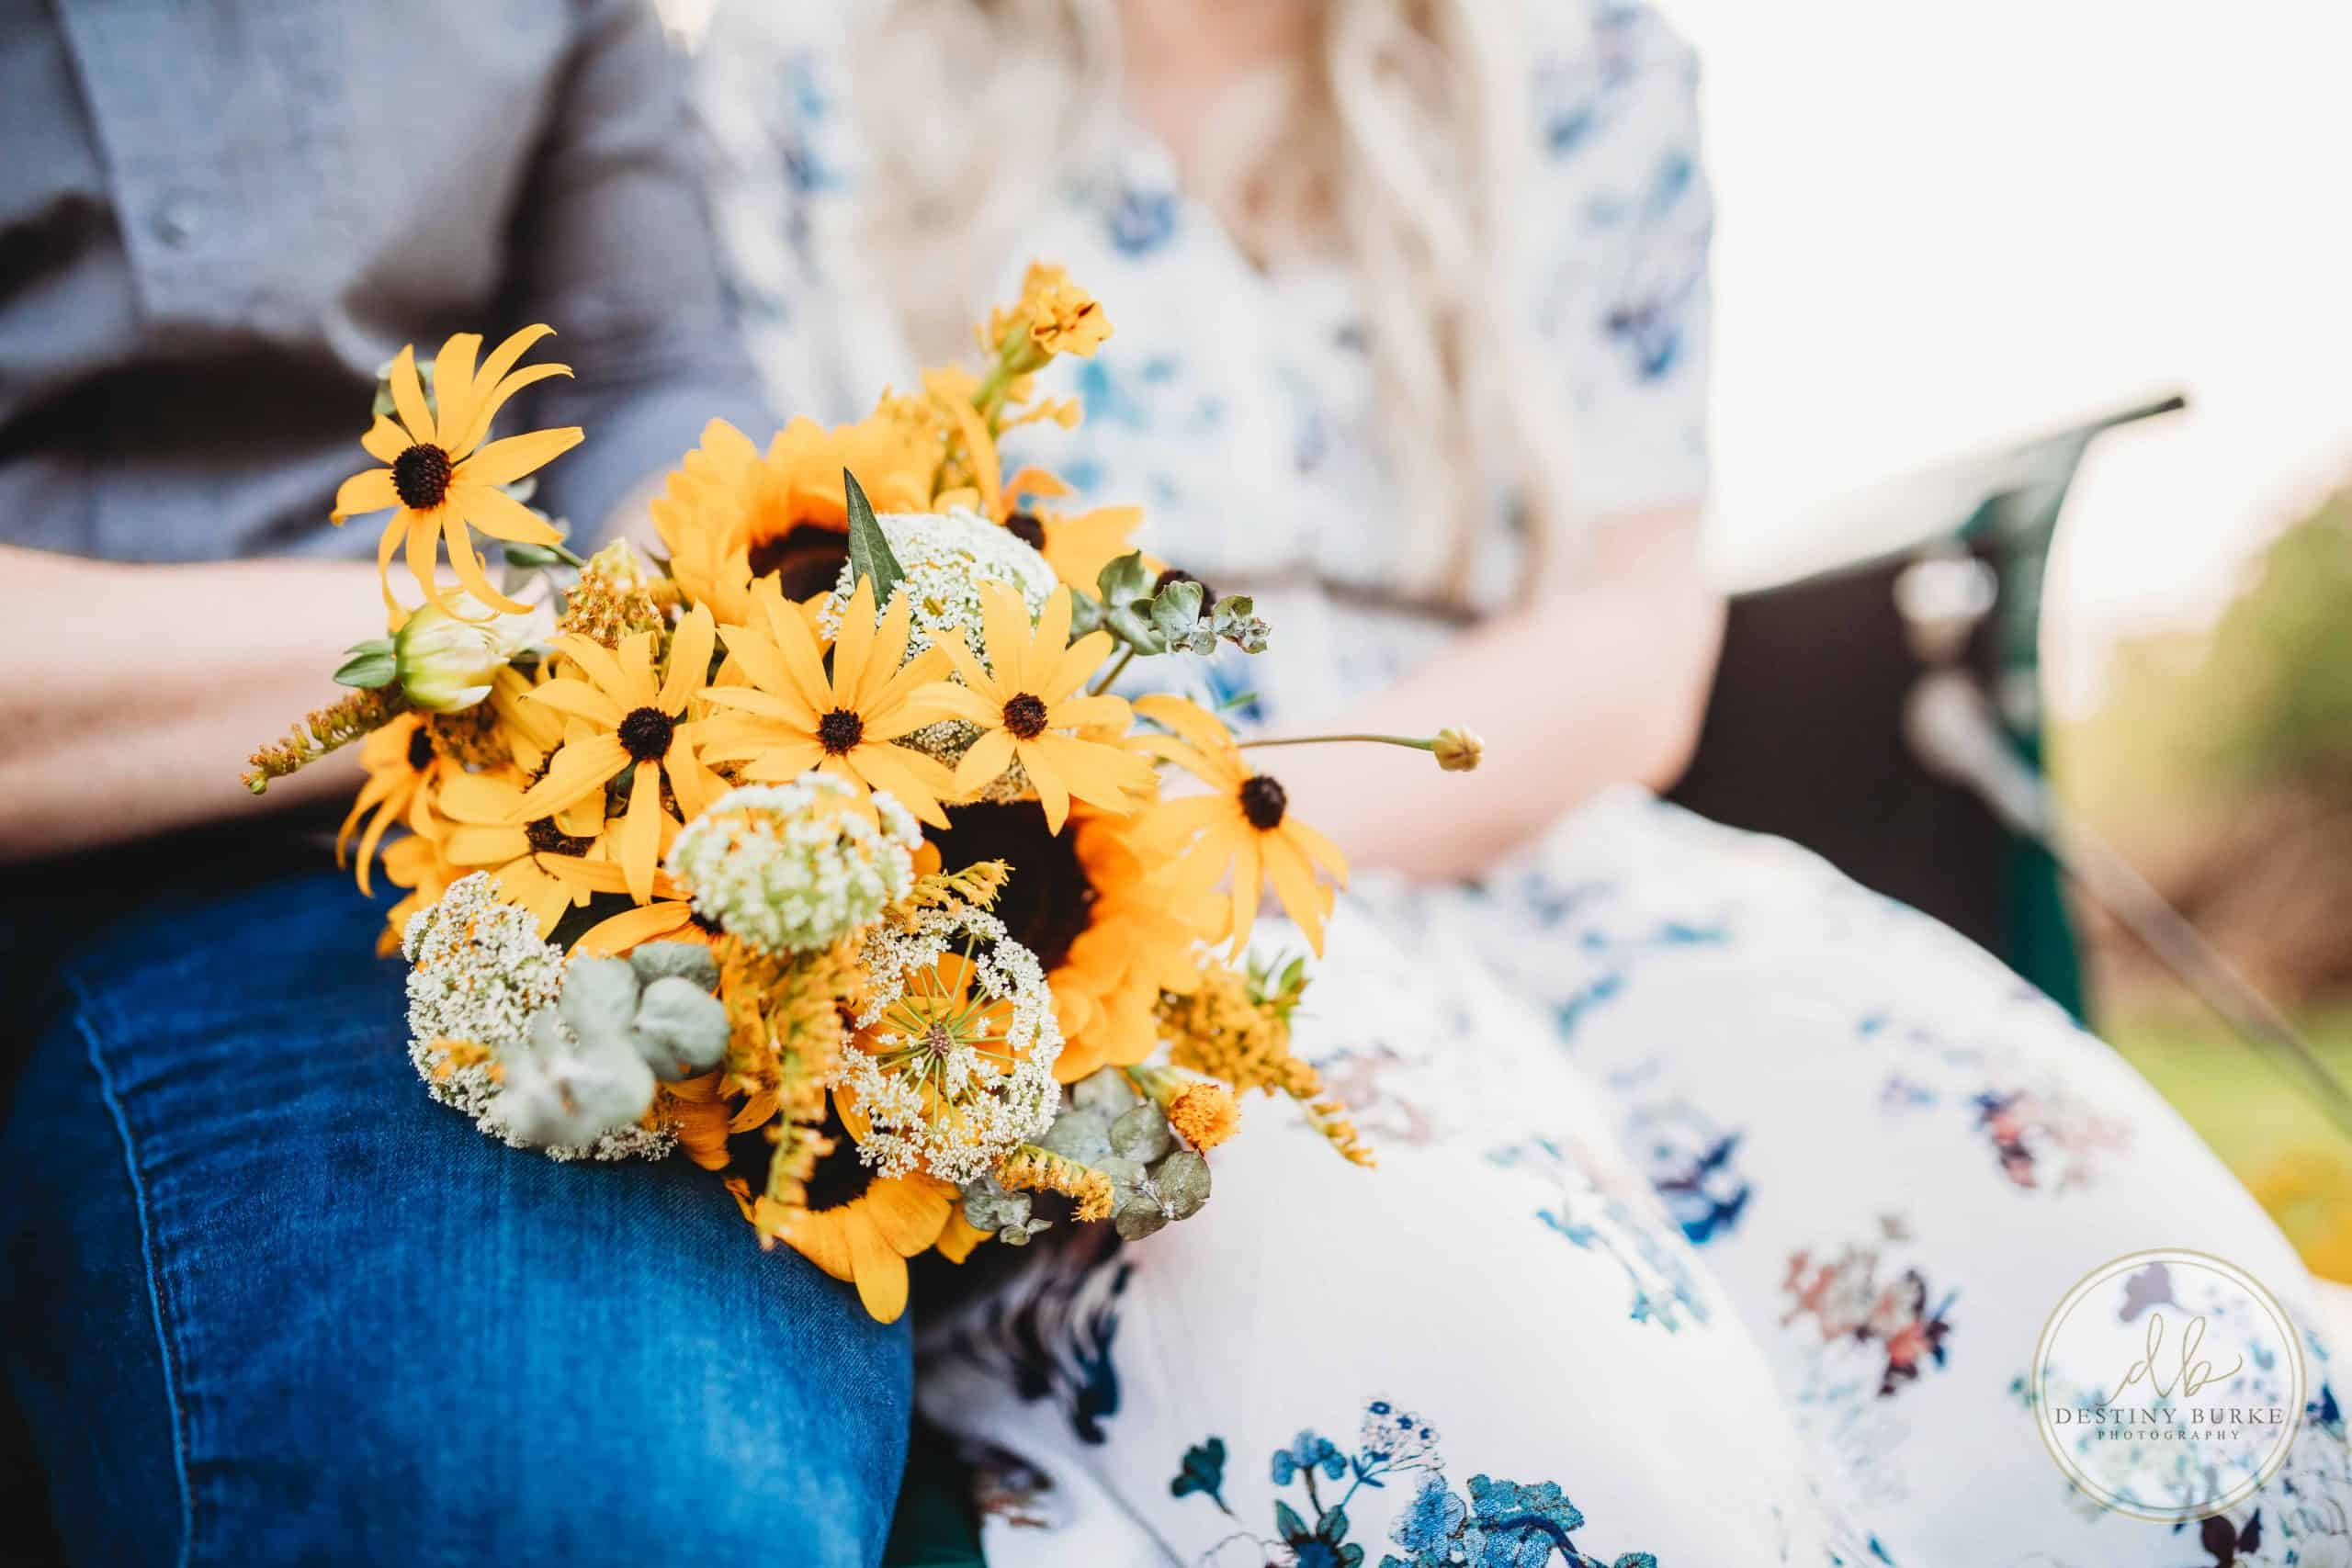 Truck, Florals, flowers, couple, photo session, anniversary session, sunflowers, dress, studabaker, vintage truck, vintage